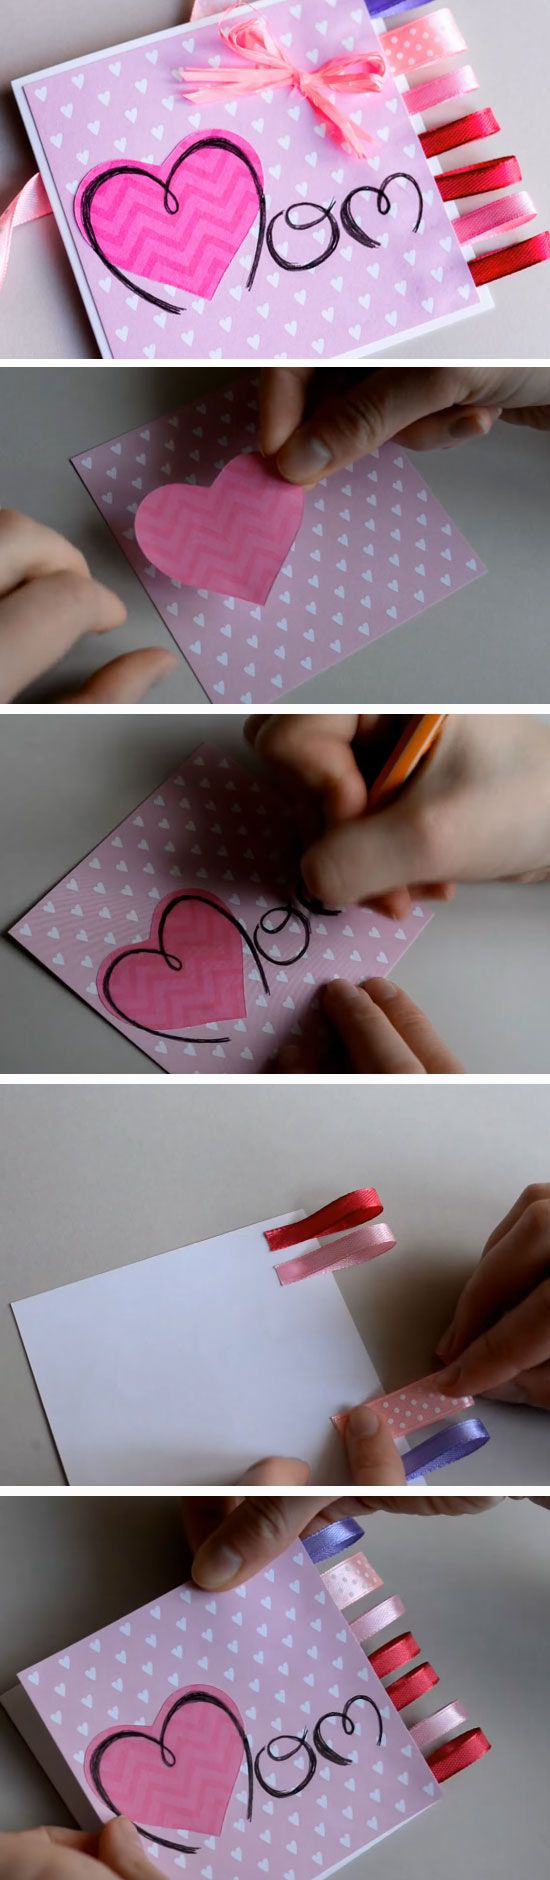 diy mothers day card ideas for children stacy bday pinterest